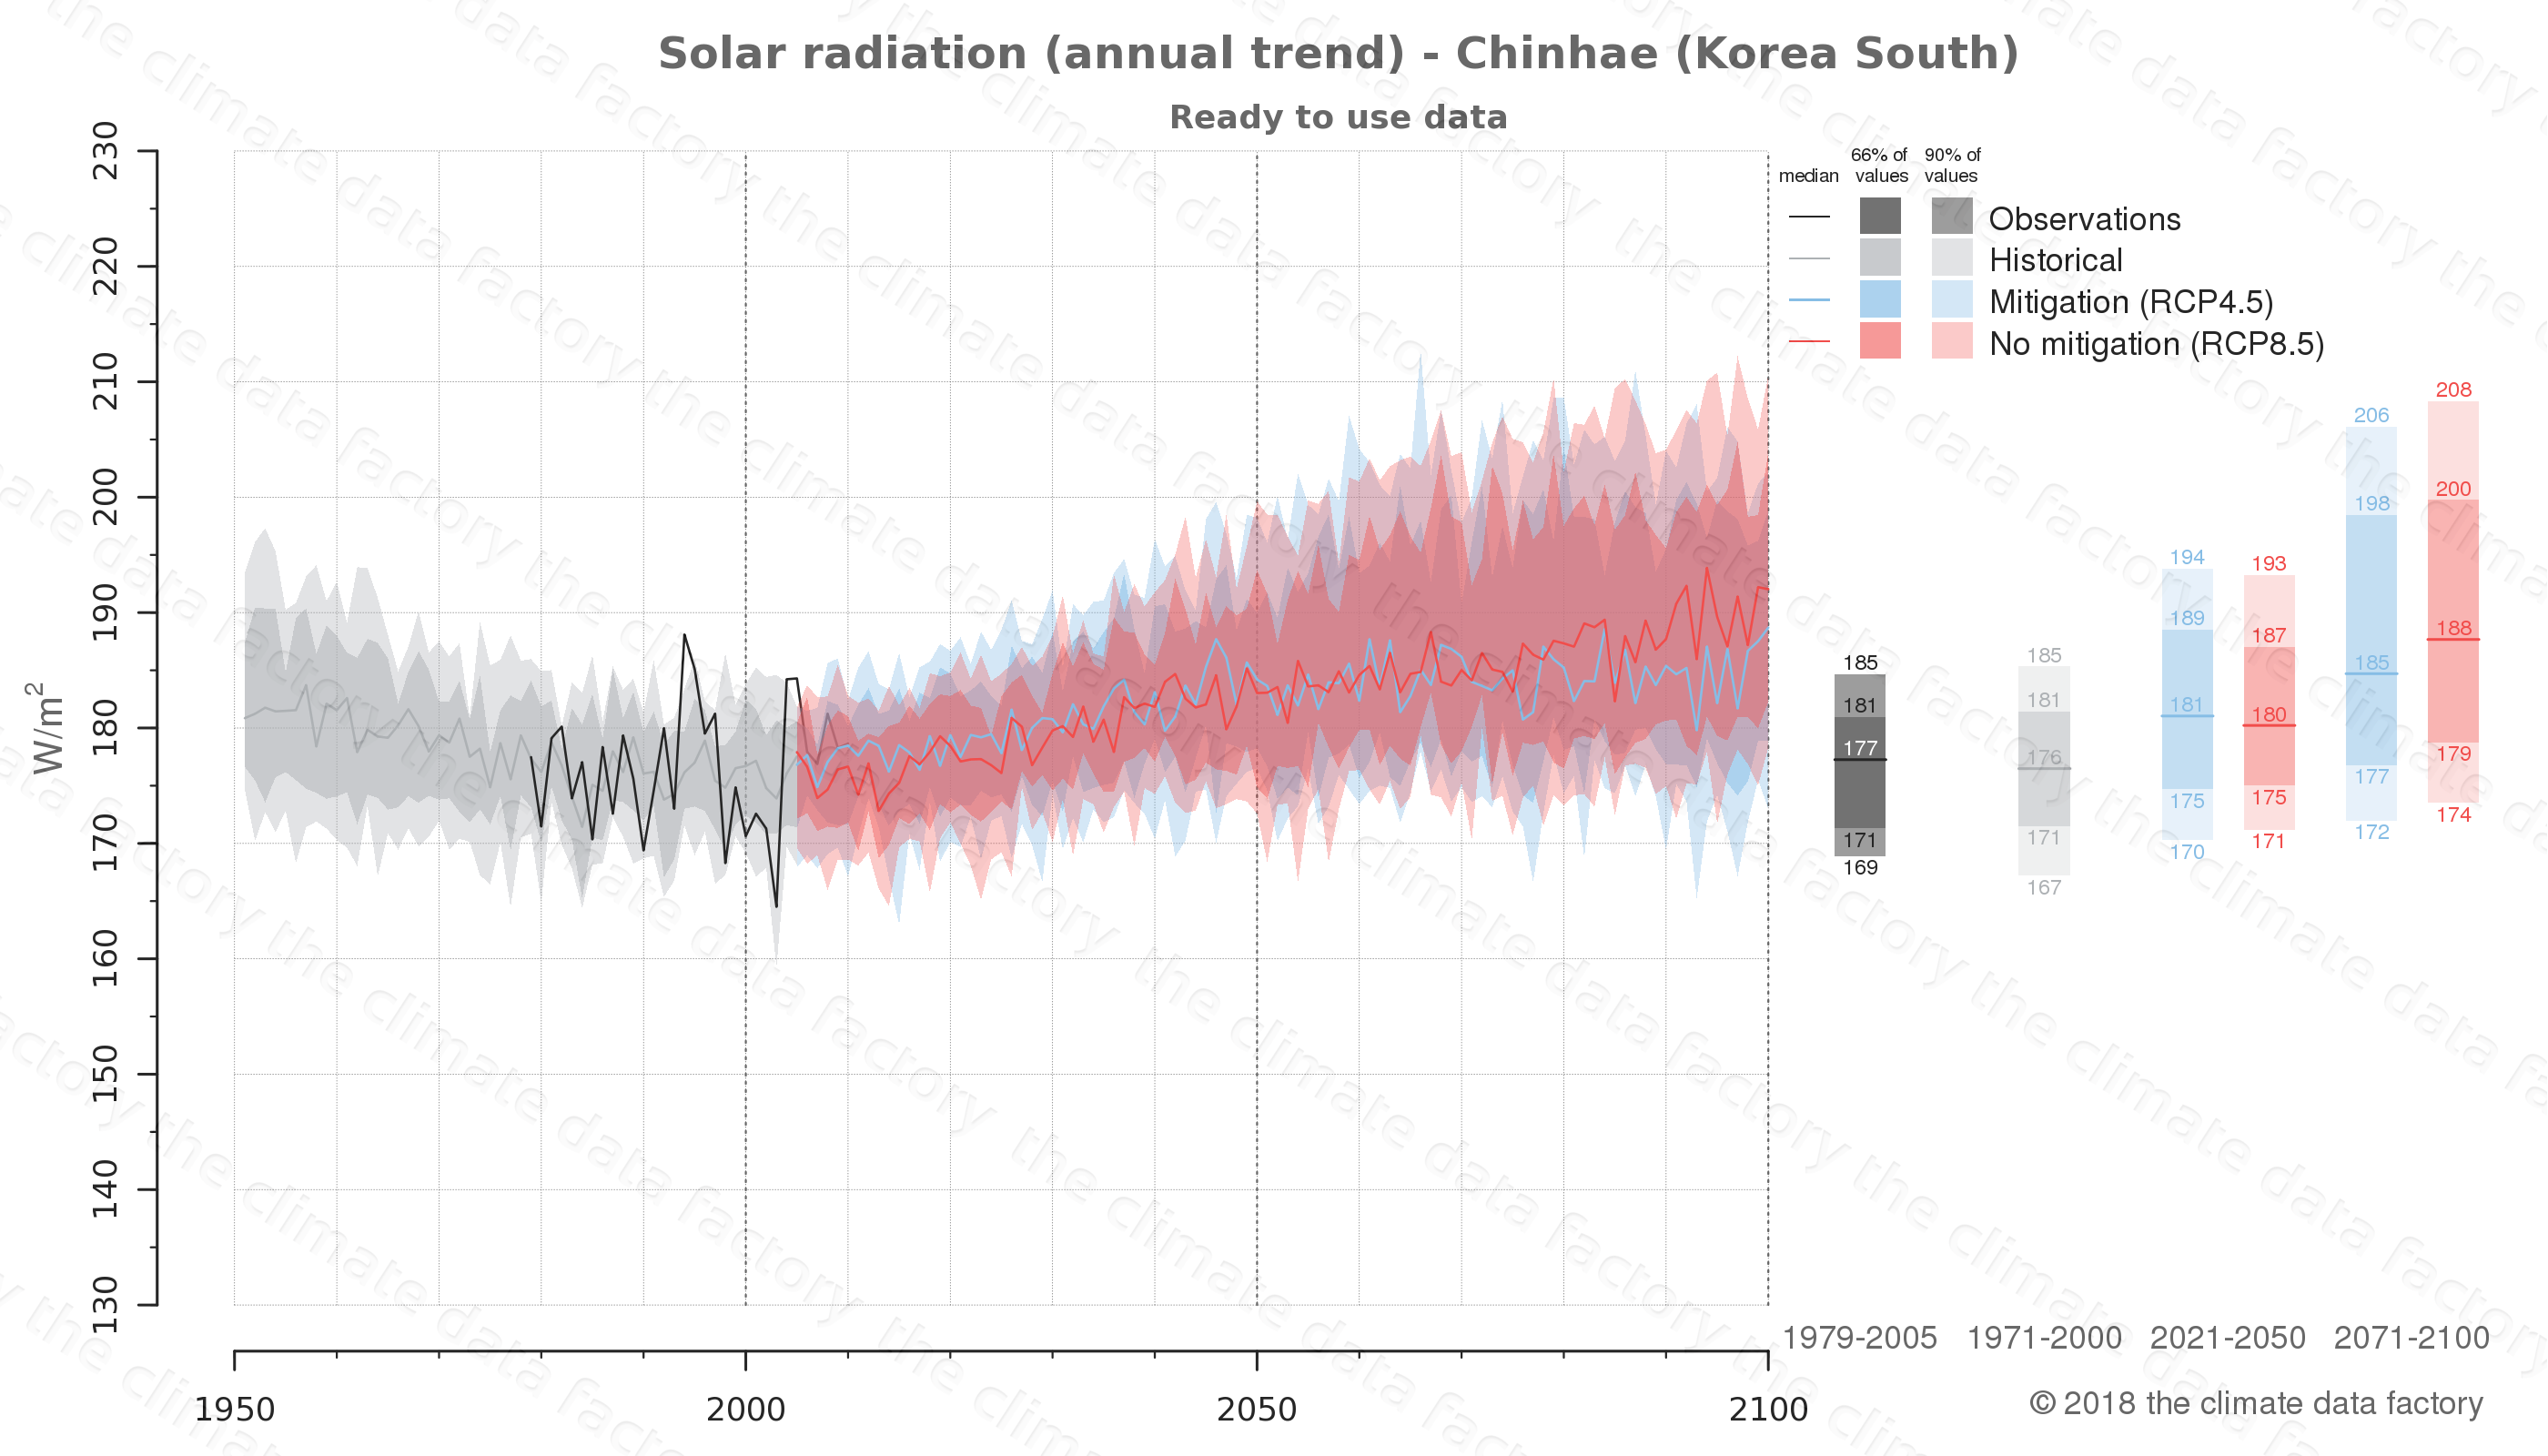 climate change data policy adaptation climate graph city data solar-radiation chinhae south korea